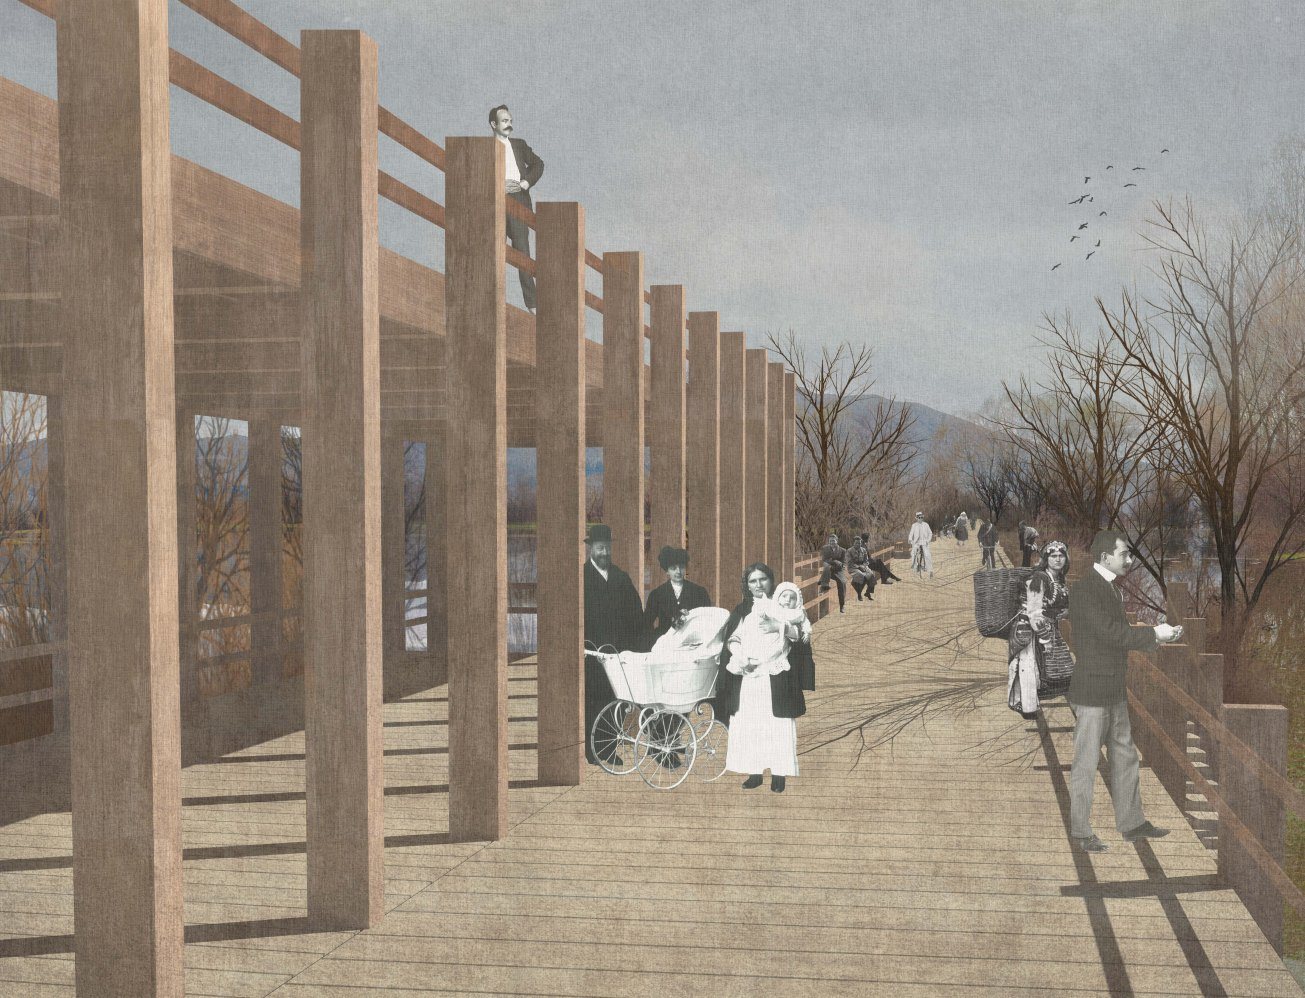 Into  wooden walkways, Marson Korbi, Polytechnic of Bari